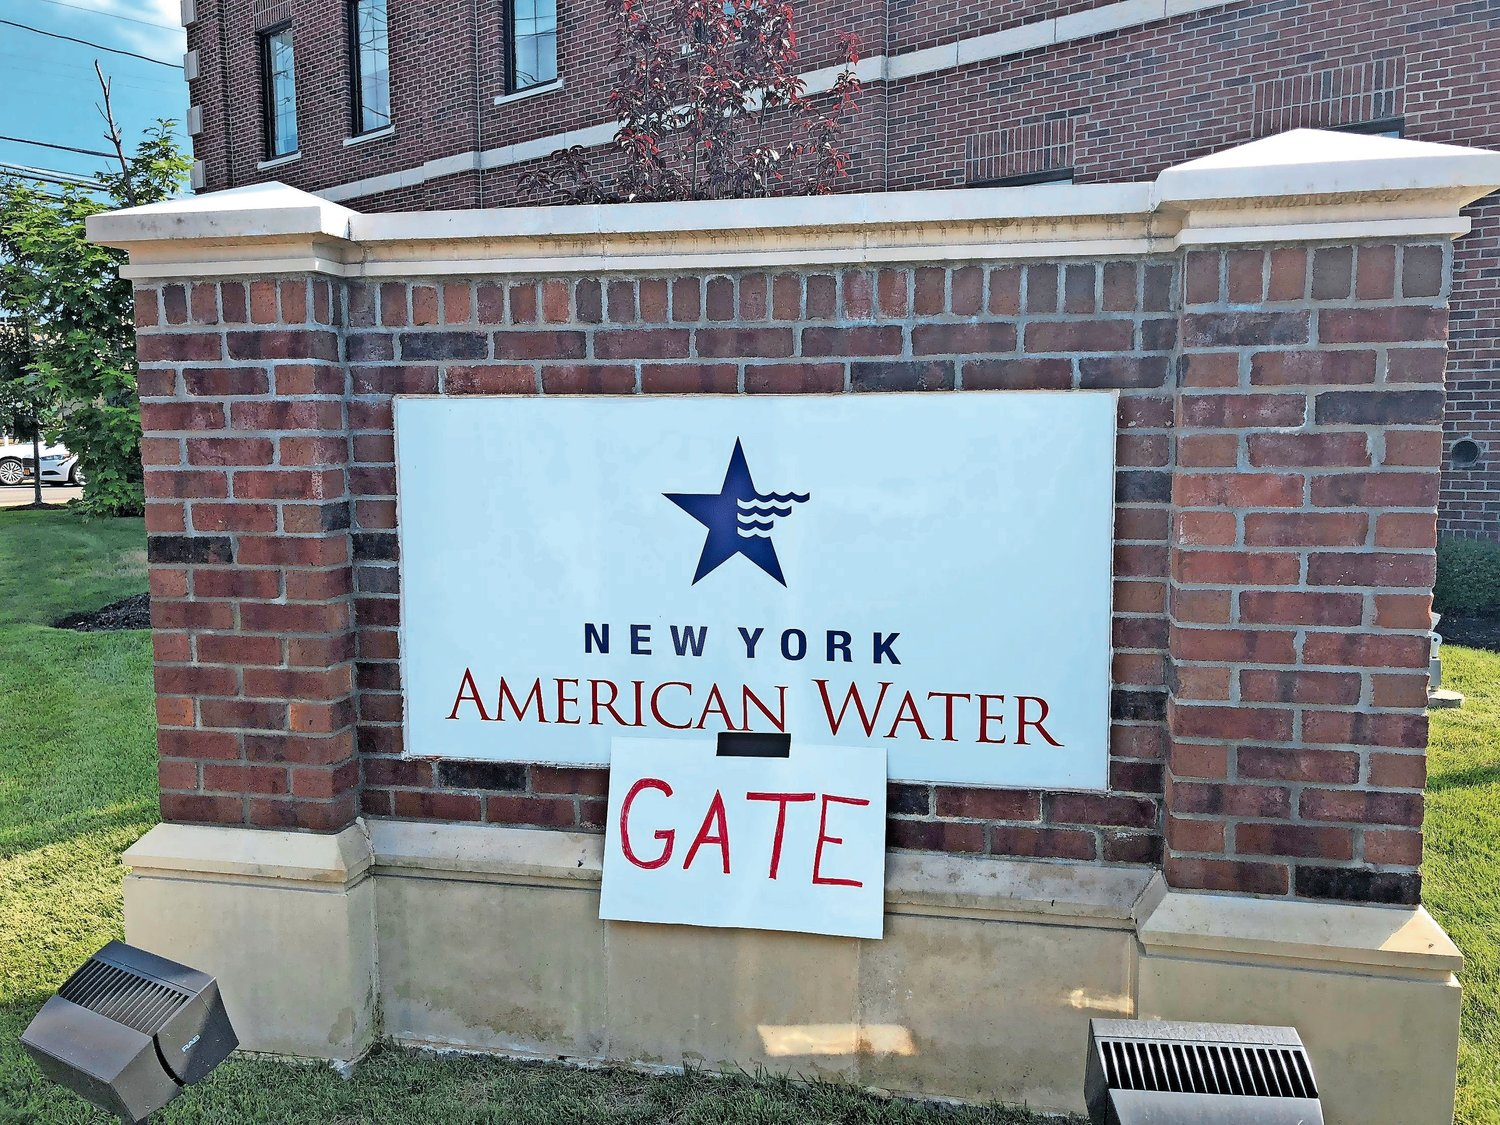 An audit filed with the state Public Service Commission faults New York American Water's longer billing season and lack of communication for the higher water bills last summer.